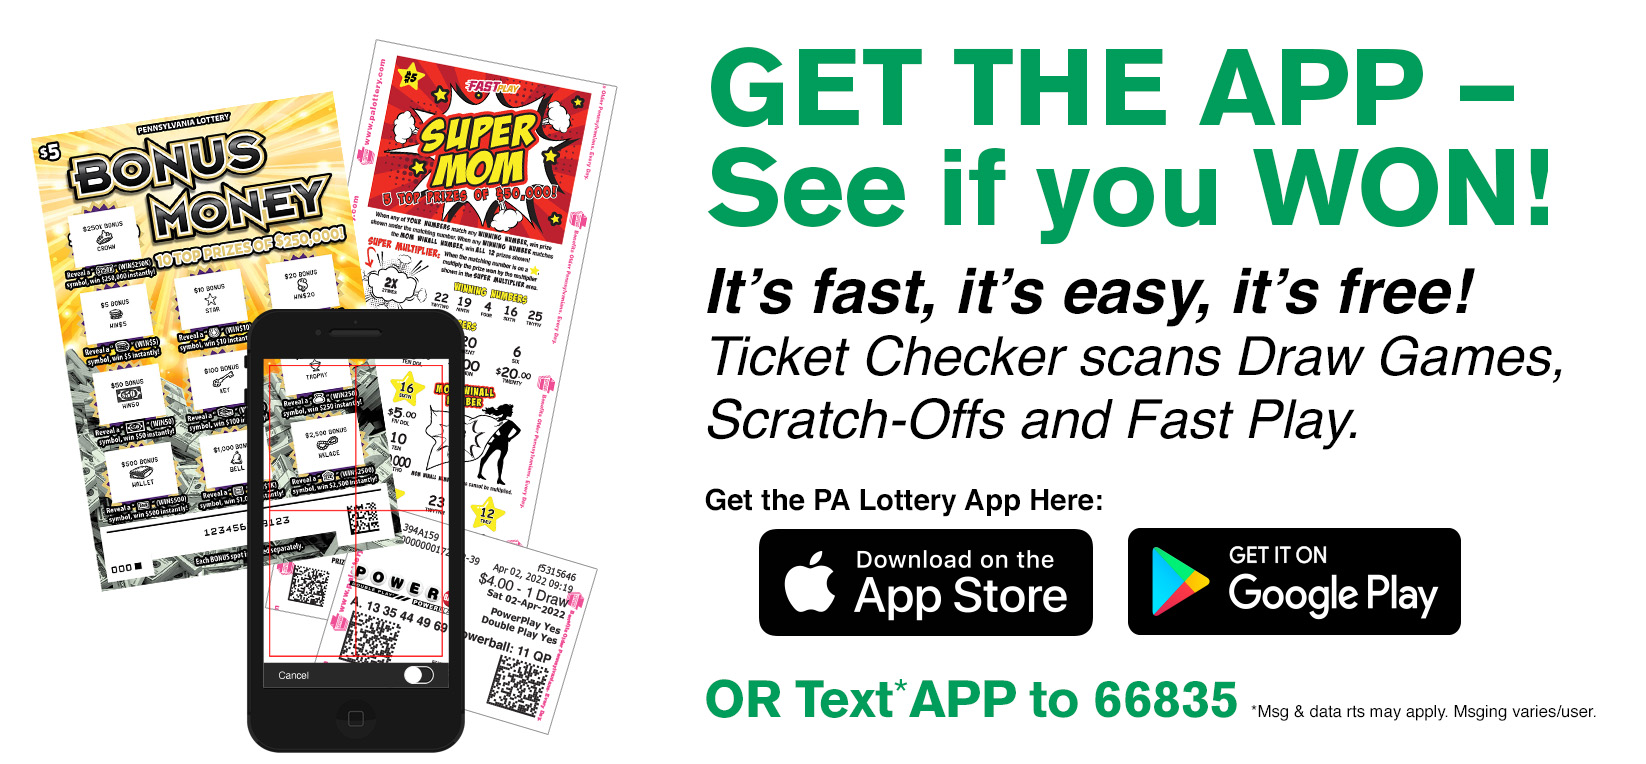 Ticket Checker, Use the App to See if You Won!